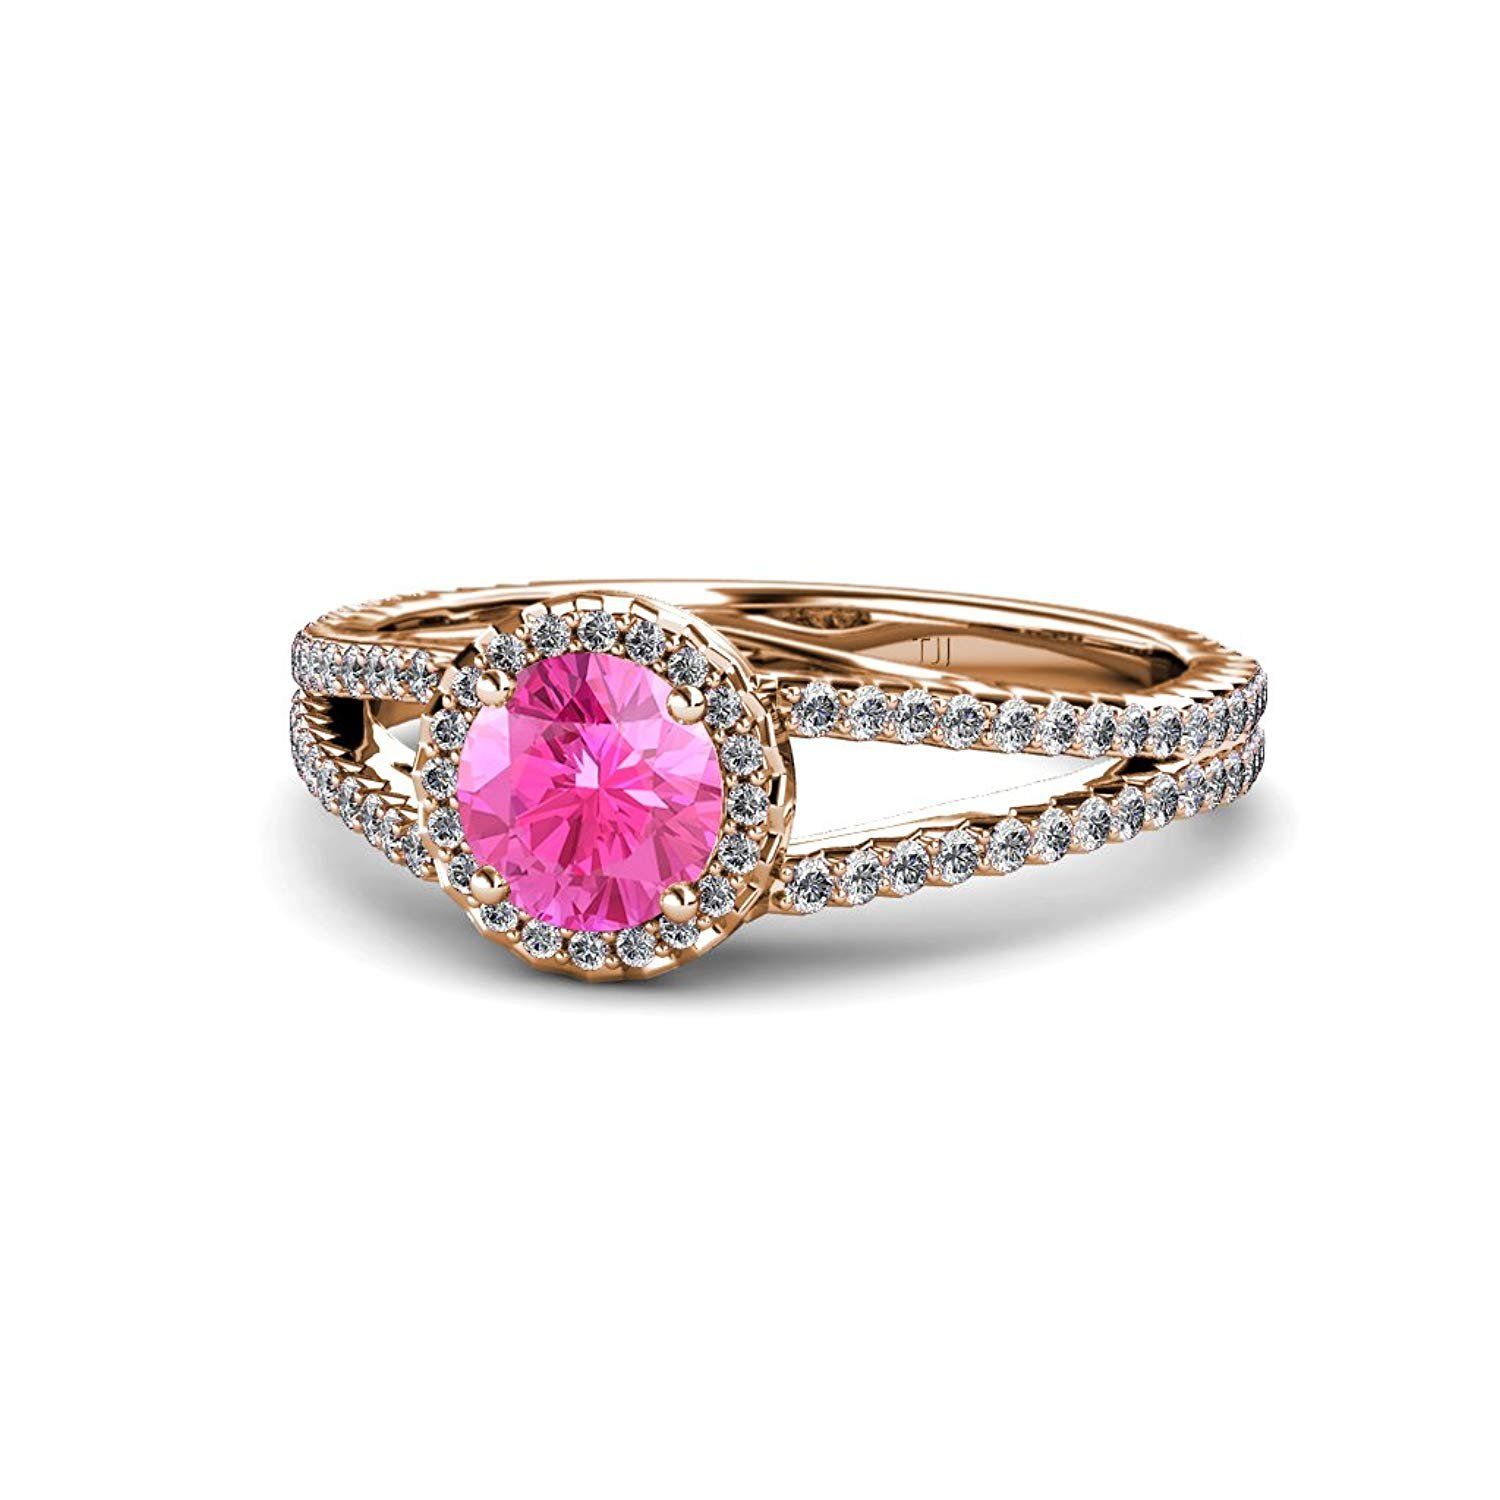 Pink Sapphire and Diamond (SI2-I1, G-H) Halo Engagement Ring 1.33 ct tw in 14K Rose Gold.size 4.5 by TriJewels